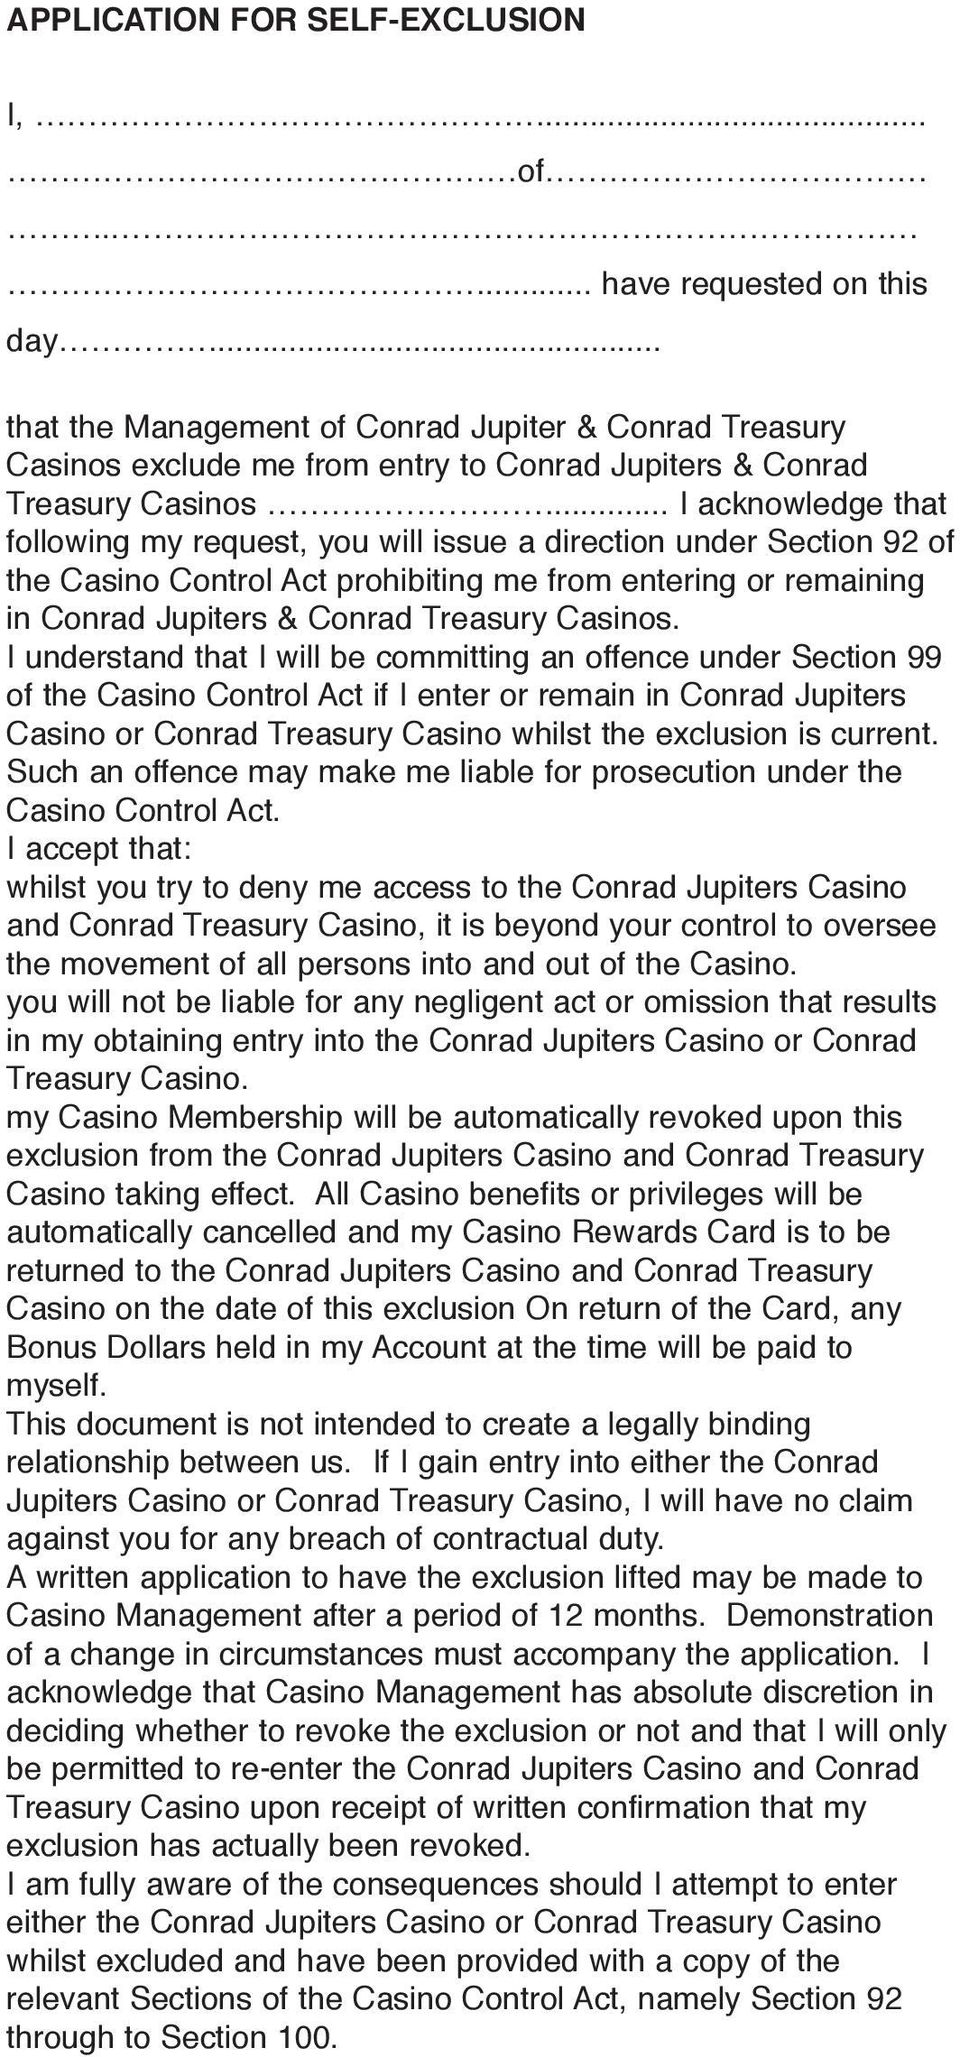 .. I acknowledge that following my request, you will issue a direction under Section 92 of the Casino Control Act prohibiting me from entering or remaining in Conrad Jupiters & Conrad Treasury Casinos.